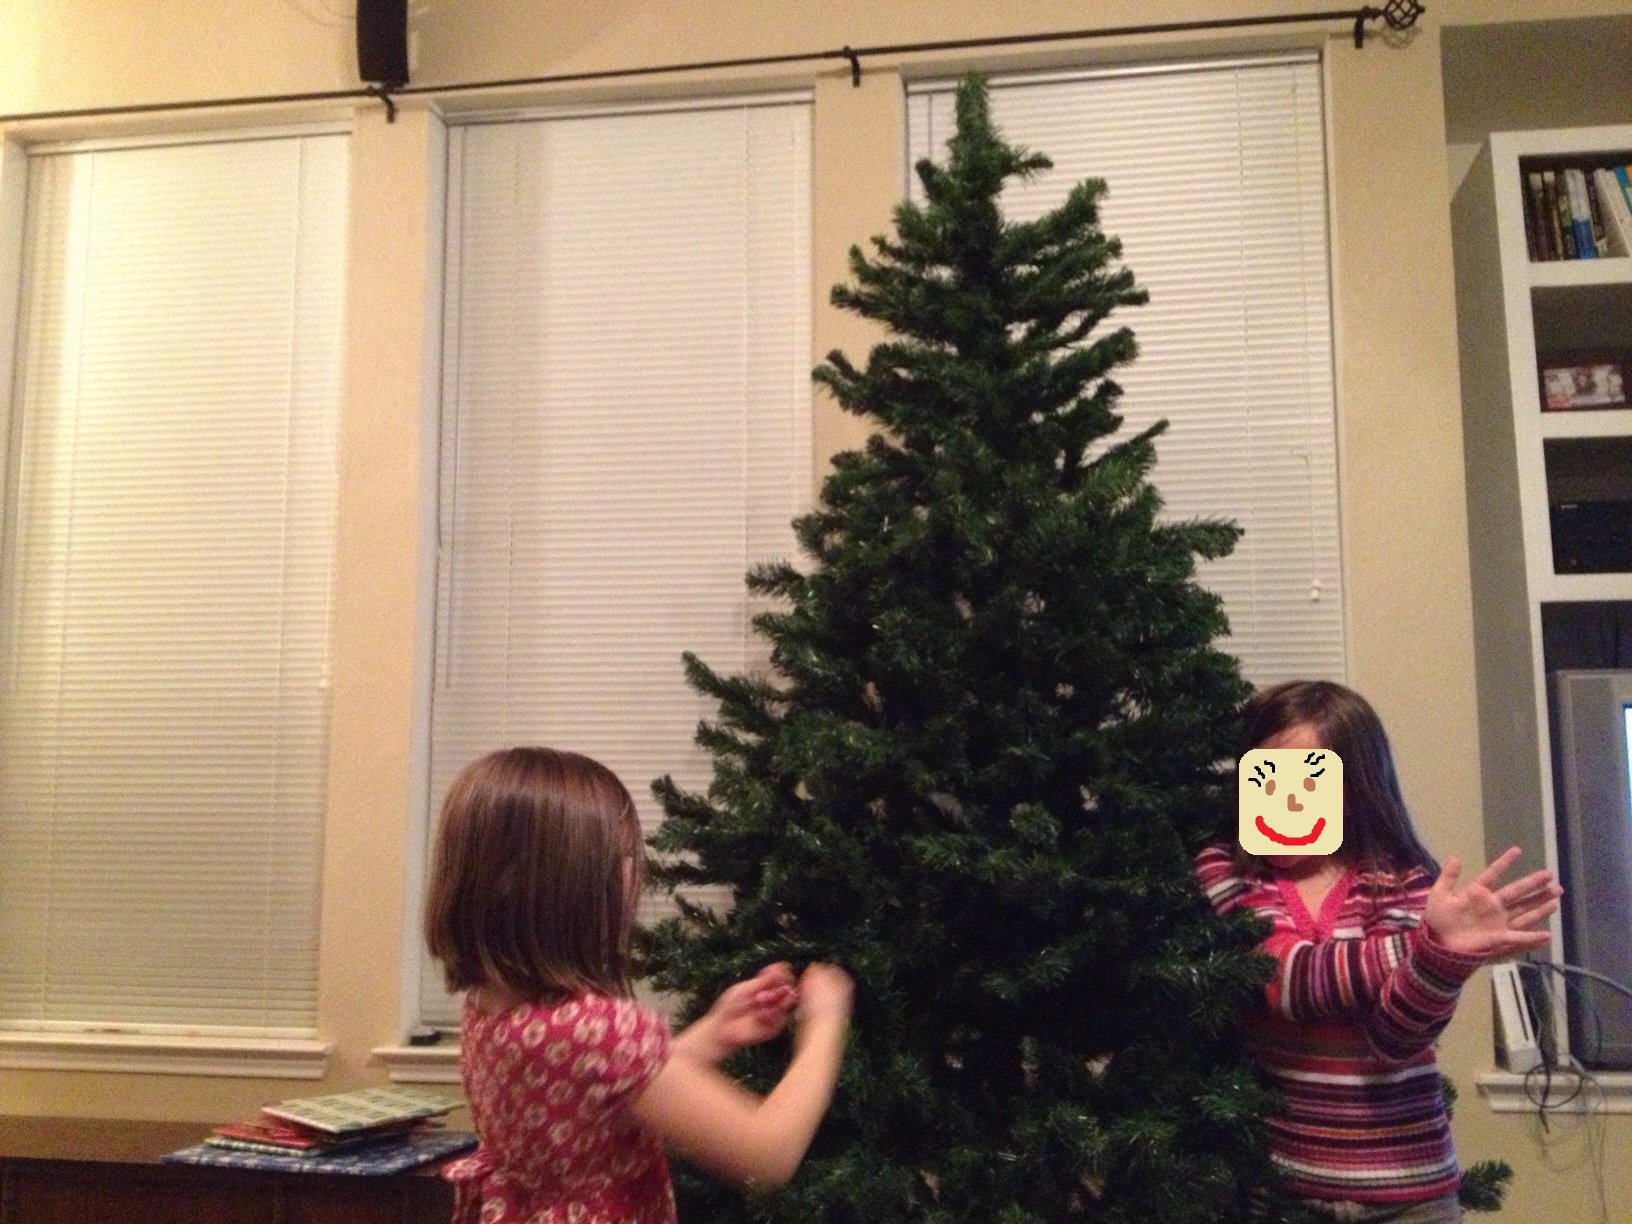 Decorate the christmas tree fa la la la - One Child Is All Fa La La La La I Didn T Hear Mom Say We Couldn T Decorate The Tree Until Wednesday And Gracie Do You Know What She S Doing